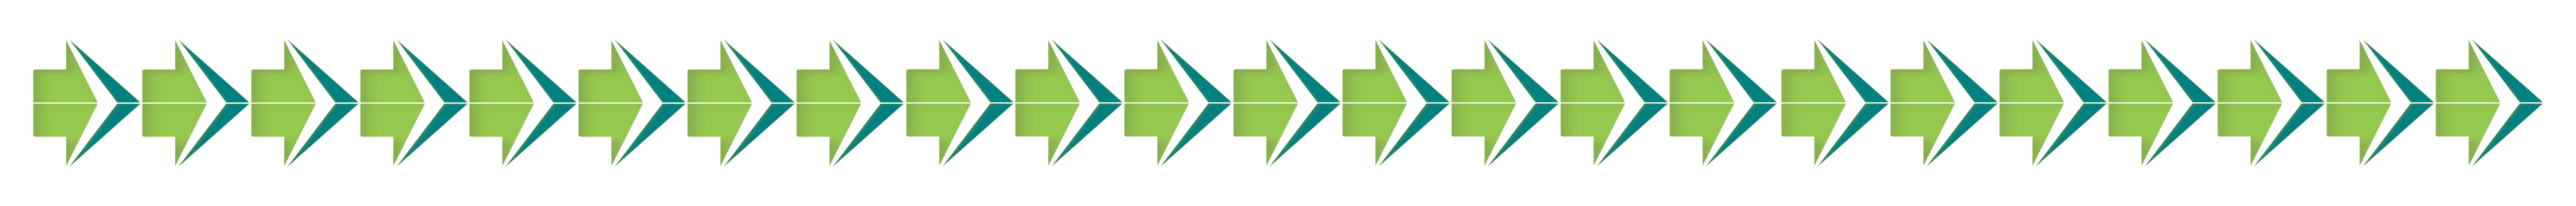 progress arrows